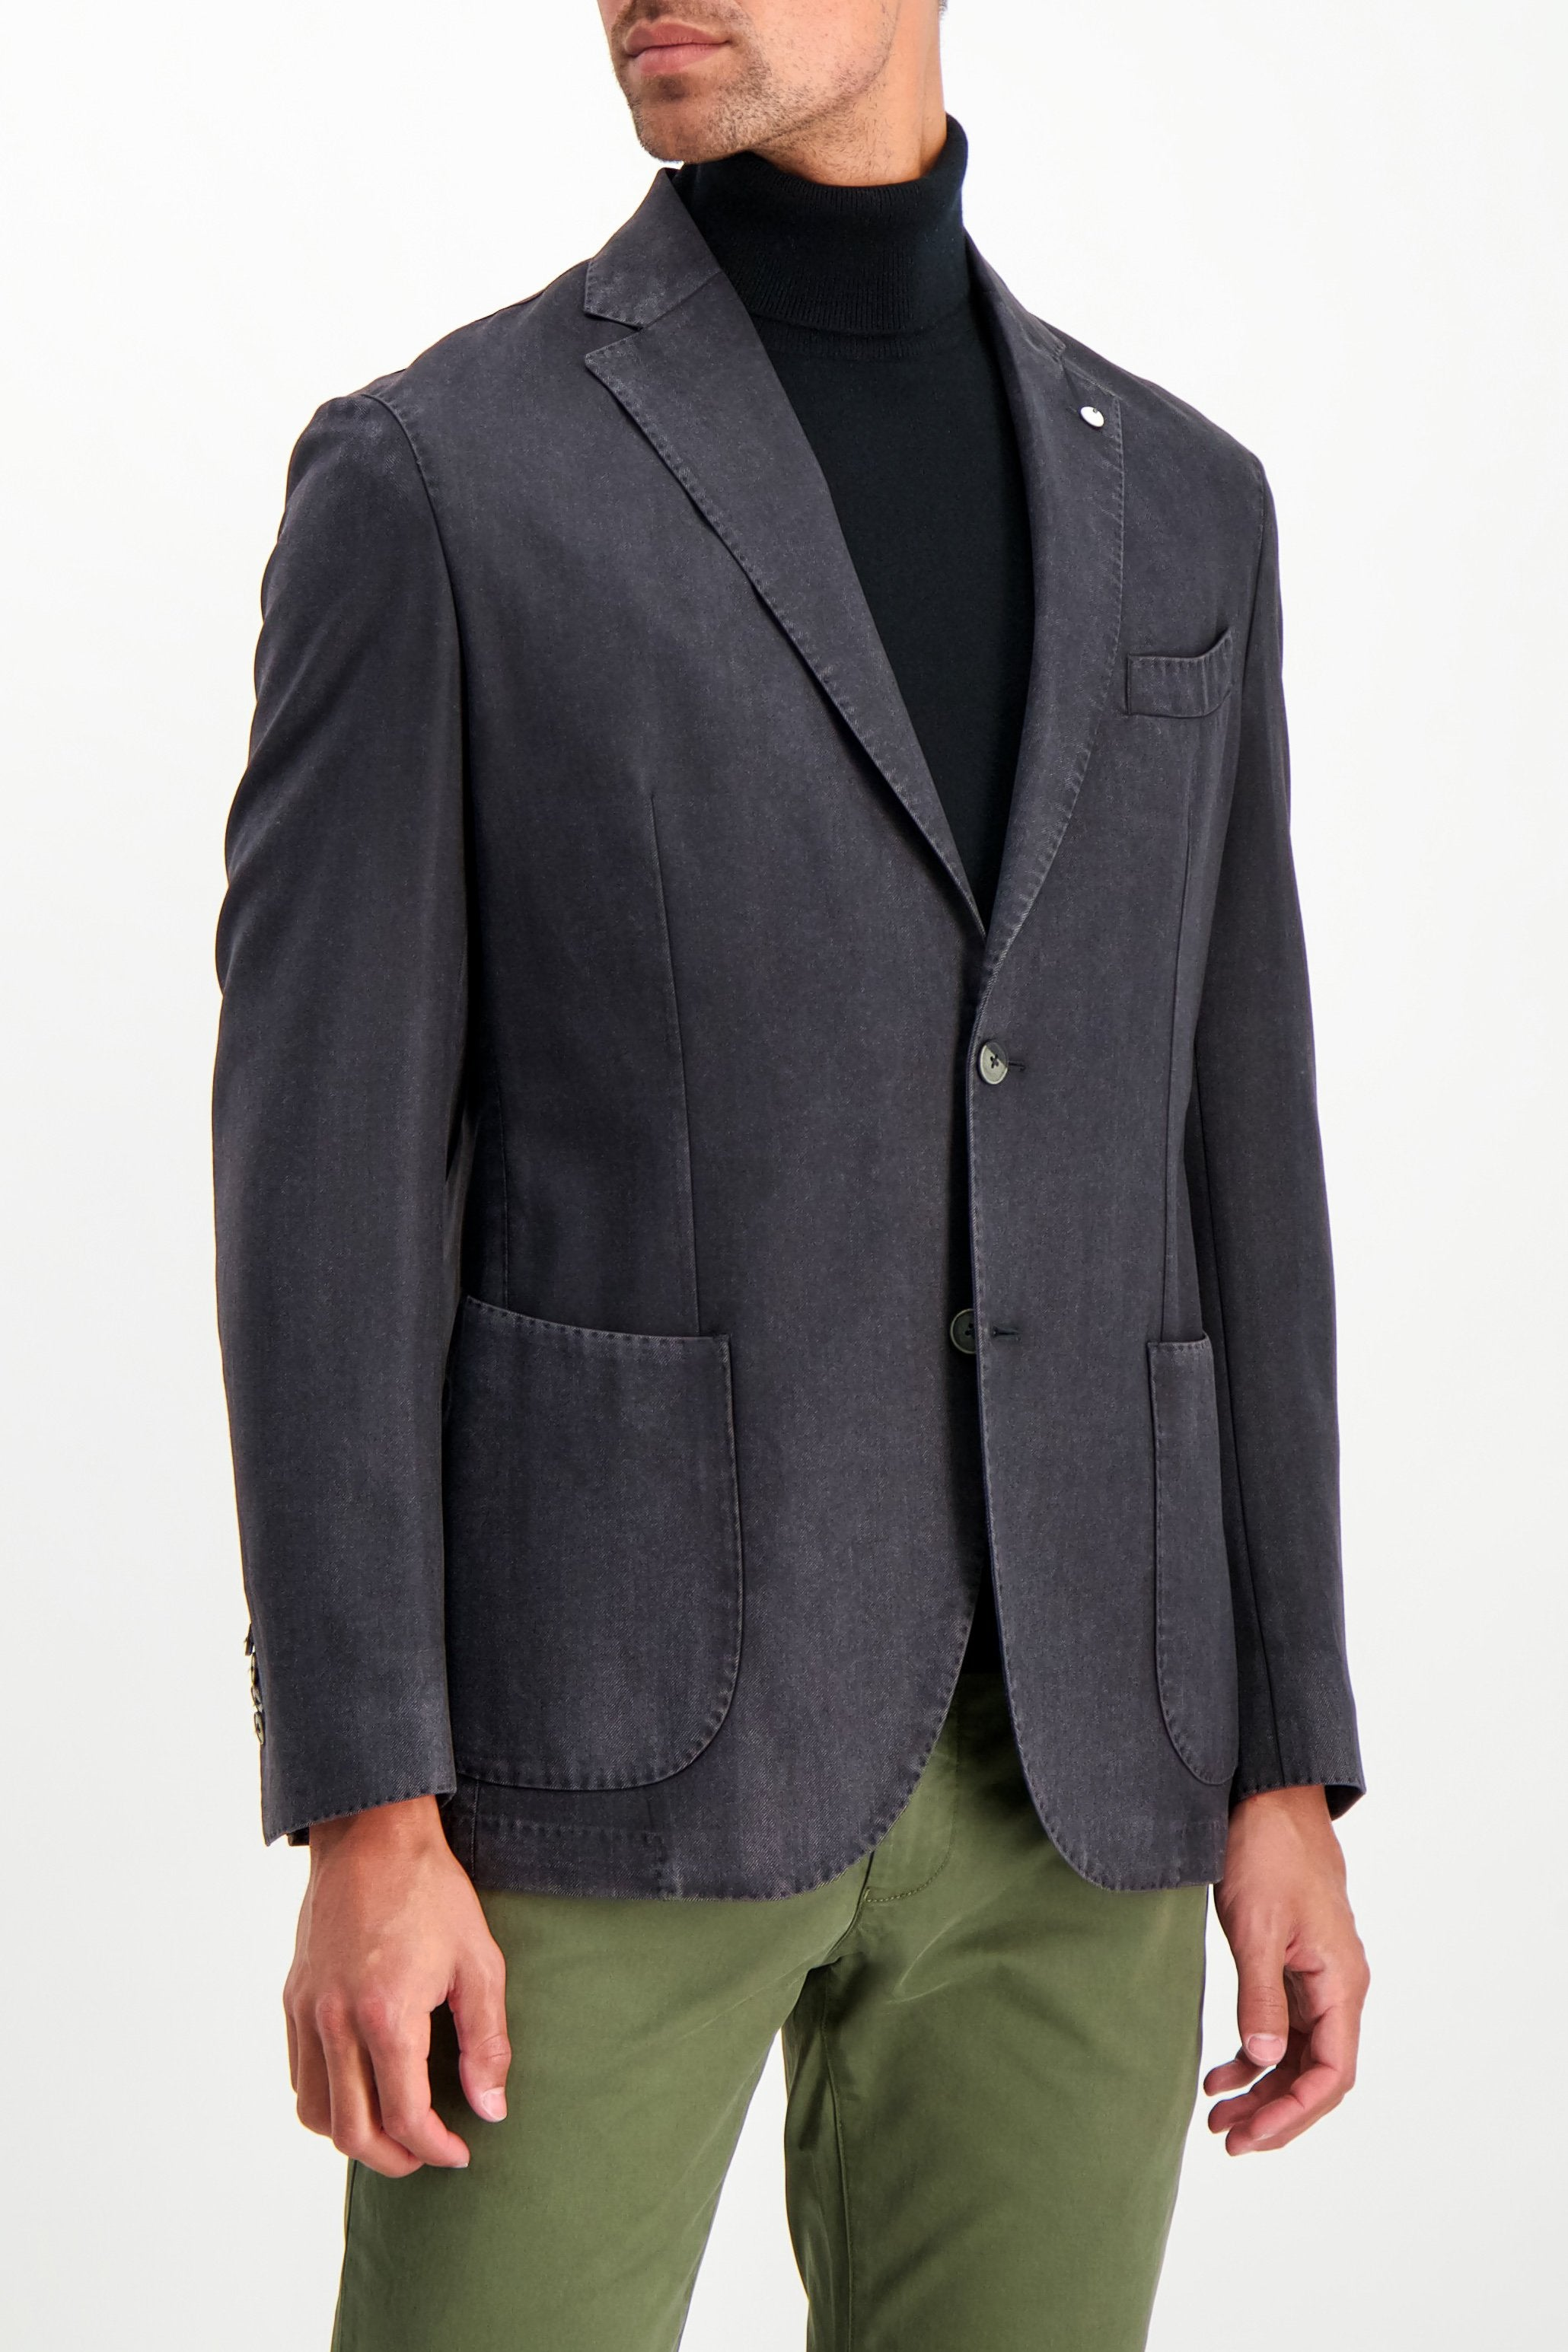 Front Crop Image Of Model Wearing L.B.M. Wool Herringbone Sportcoat Black